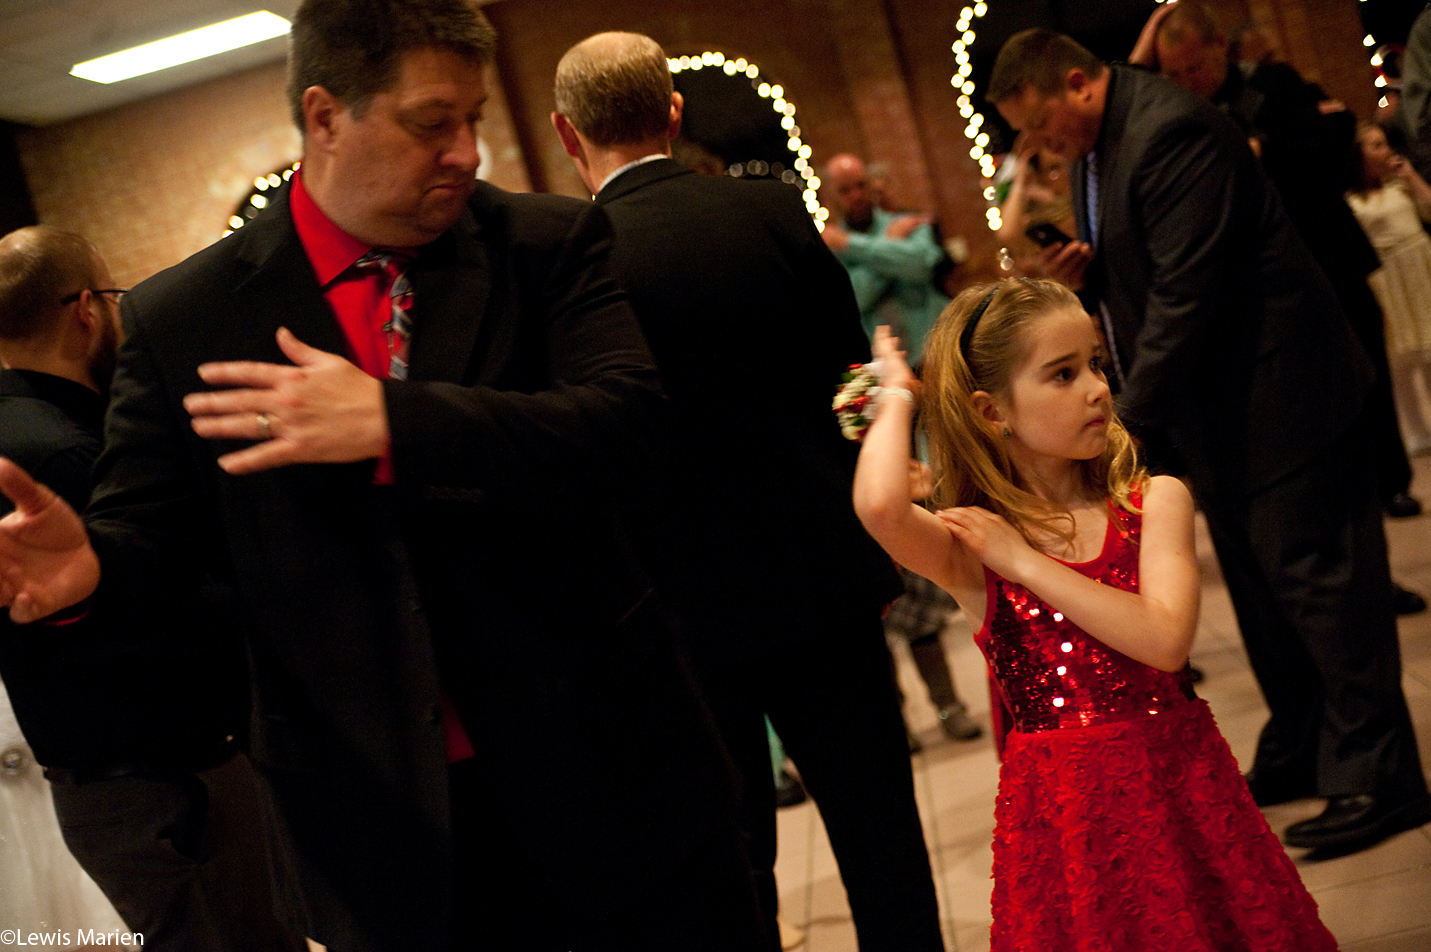 """Richard Hogan,of Galesburg, Ill., dances to the """"Macarena"""" with his daughter Alexis, 7,during the 27th annual Daddy-Daughter Candyland Ball Dec. 2 at the Lake Storey Pavilion in Galesburg, Ill."""